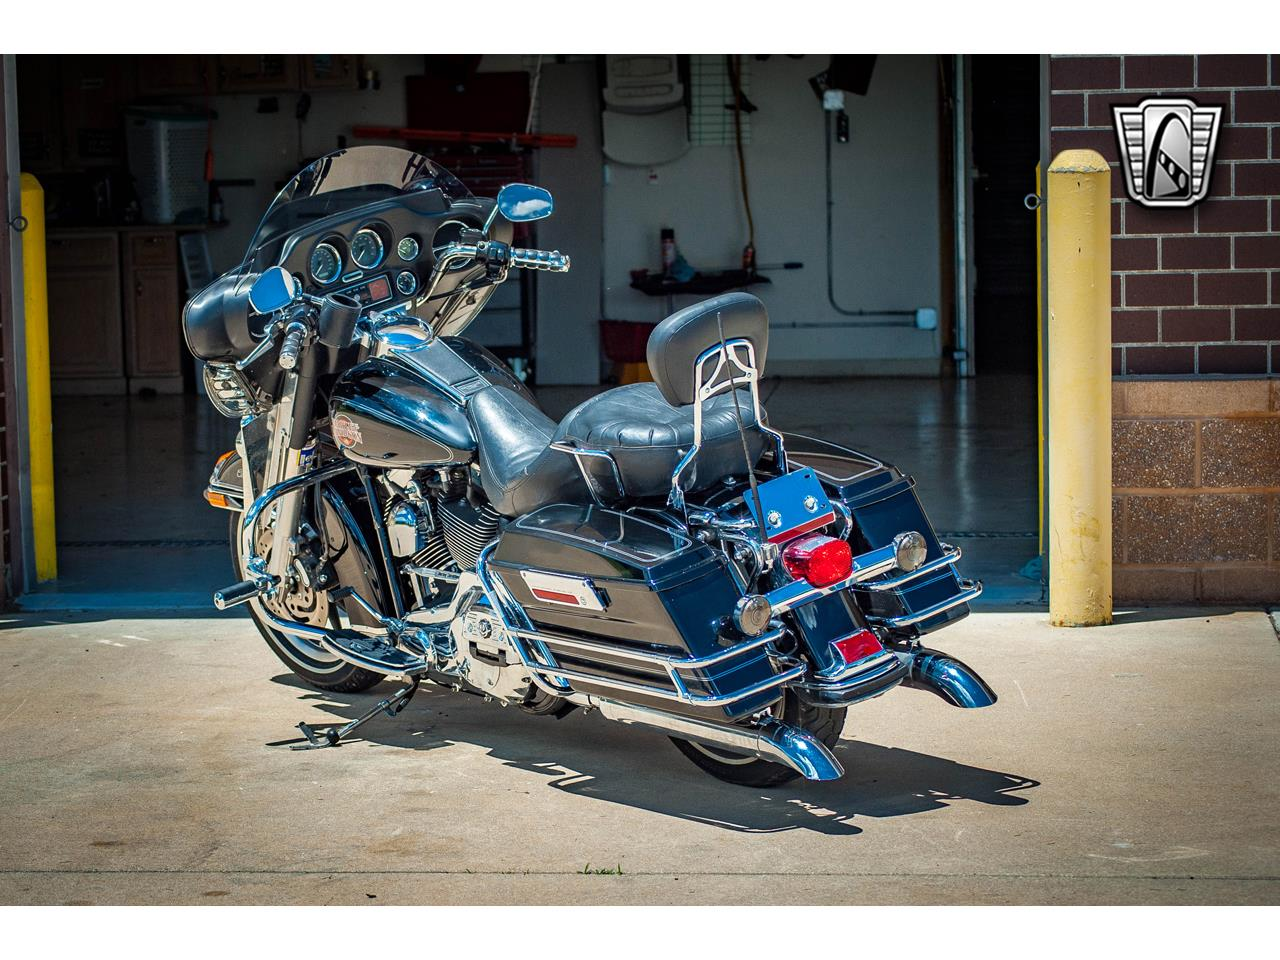 Large Picture of 2004 Motorcycle located in Illinois - $12,000.00 Offered by Gateway Classic Cars - St. Louis - QD6F